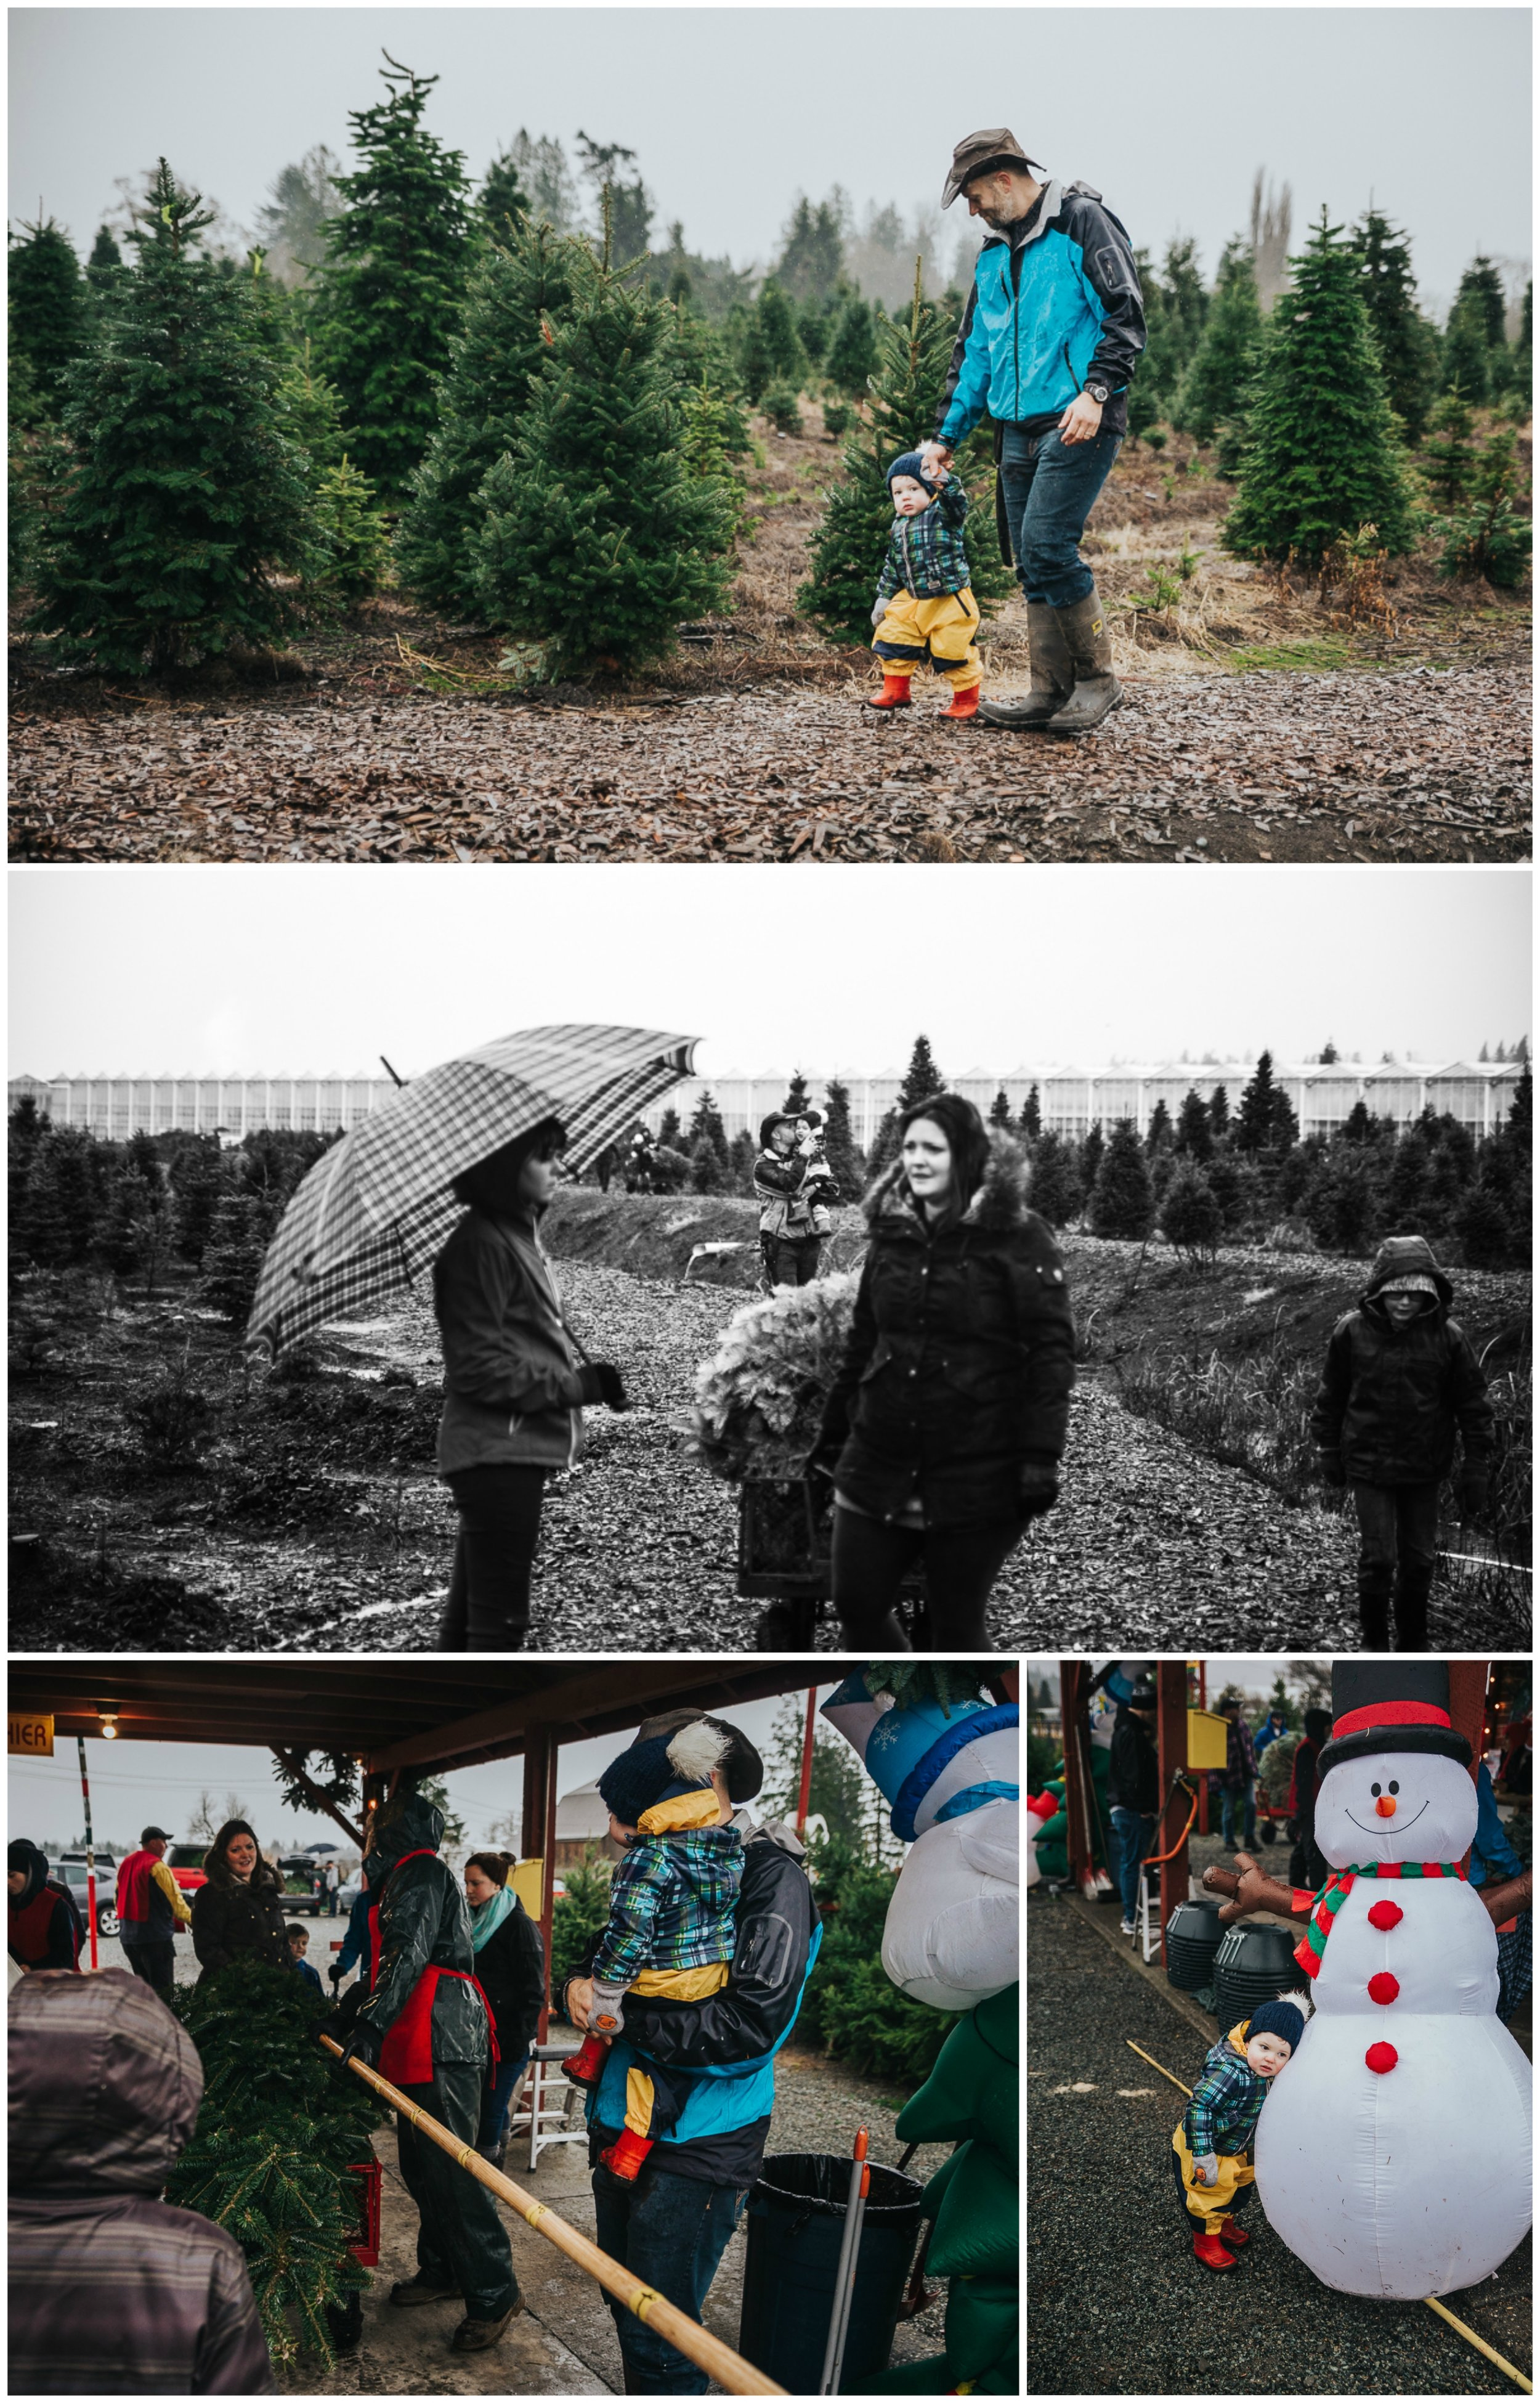 Christmas Tree Hunt Tradition at Oh Christmas Tree Farms in Langley, BC. Documentary Family Holiday Tradition, Real life moments with a family of 7 by Mimsical Photography. West Coast photographer in Lower Mainland, British Columbia